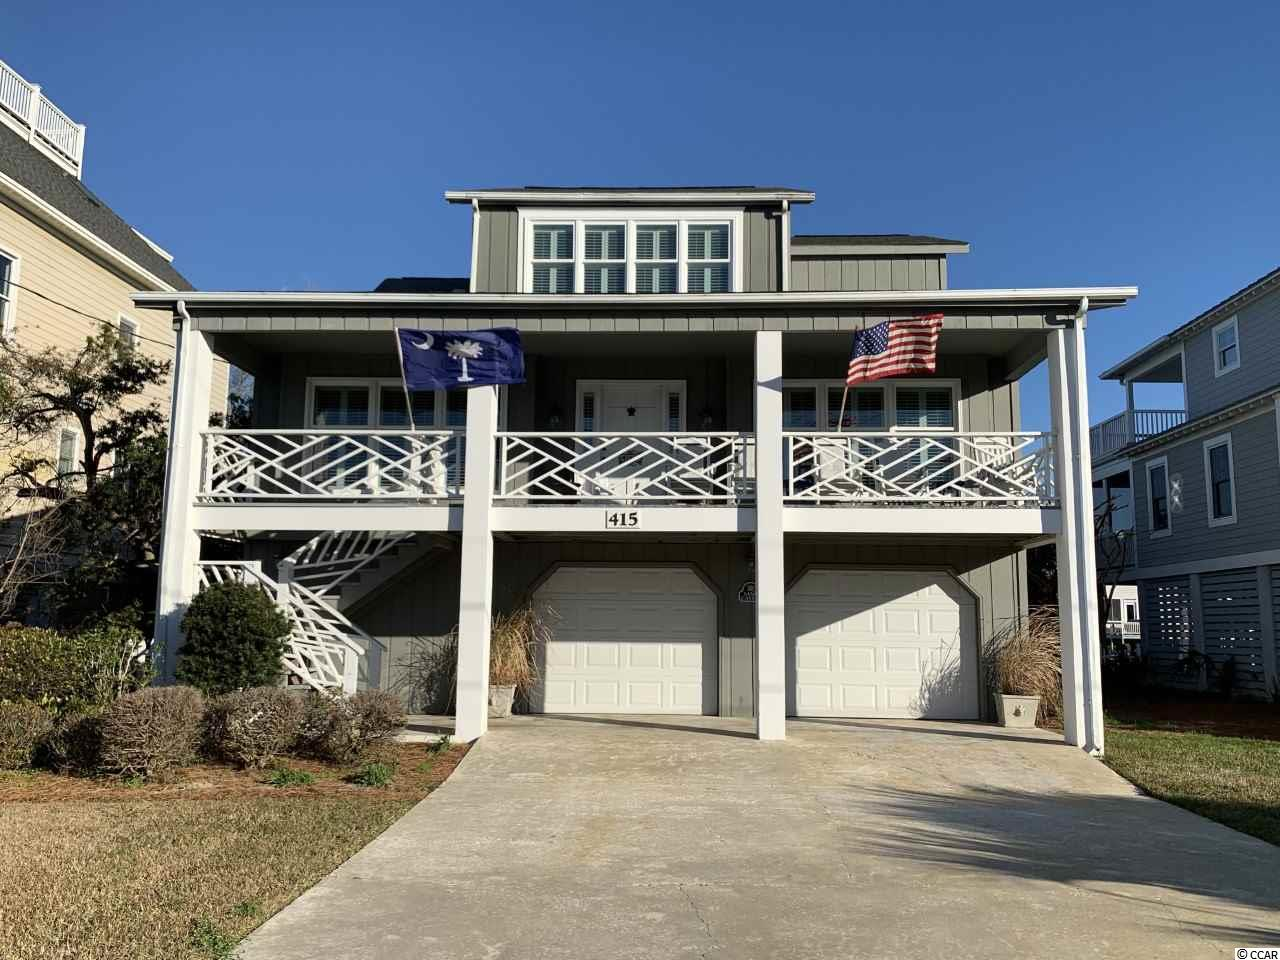 "415 Sportsman Drive is located along Sportsman Canal to the east and  the creek and marsh to the west in highly desirable Litchfield Beach.  Litchfield Beach is known as the ""Golden Curve of the Grand Strand "" ! Named so for it's gently curving stretch and beautiful golden appearance created by the sun-kissed beach and by the golden yellow sea oats that grow wild in the dunes ! This beautiful spacious 4 bedroom, 4 bath home has its own private dock on Sportsman Canal, so you can jump in your boat for a day of fishing and exploring in the creeks and ocean ! The beach is just a few minutes walk across the beautiful arch bridge over Sportsman Canal or a short bike or golf cart ride away. Endless family fun on the beach and in the creeks enjoying God's abundant wildlife and nature ! Golf, shopping, restaurants,  the Intracoastal Waterway and Brookgreen Gardens are all just about five minutes away ! Come enjoy all that beautiful Litchfield Beach has to offer !"